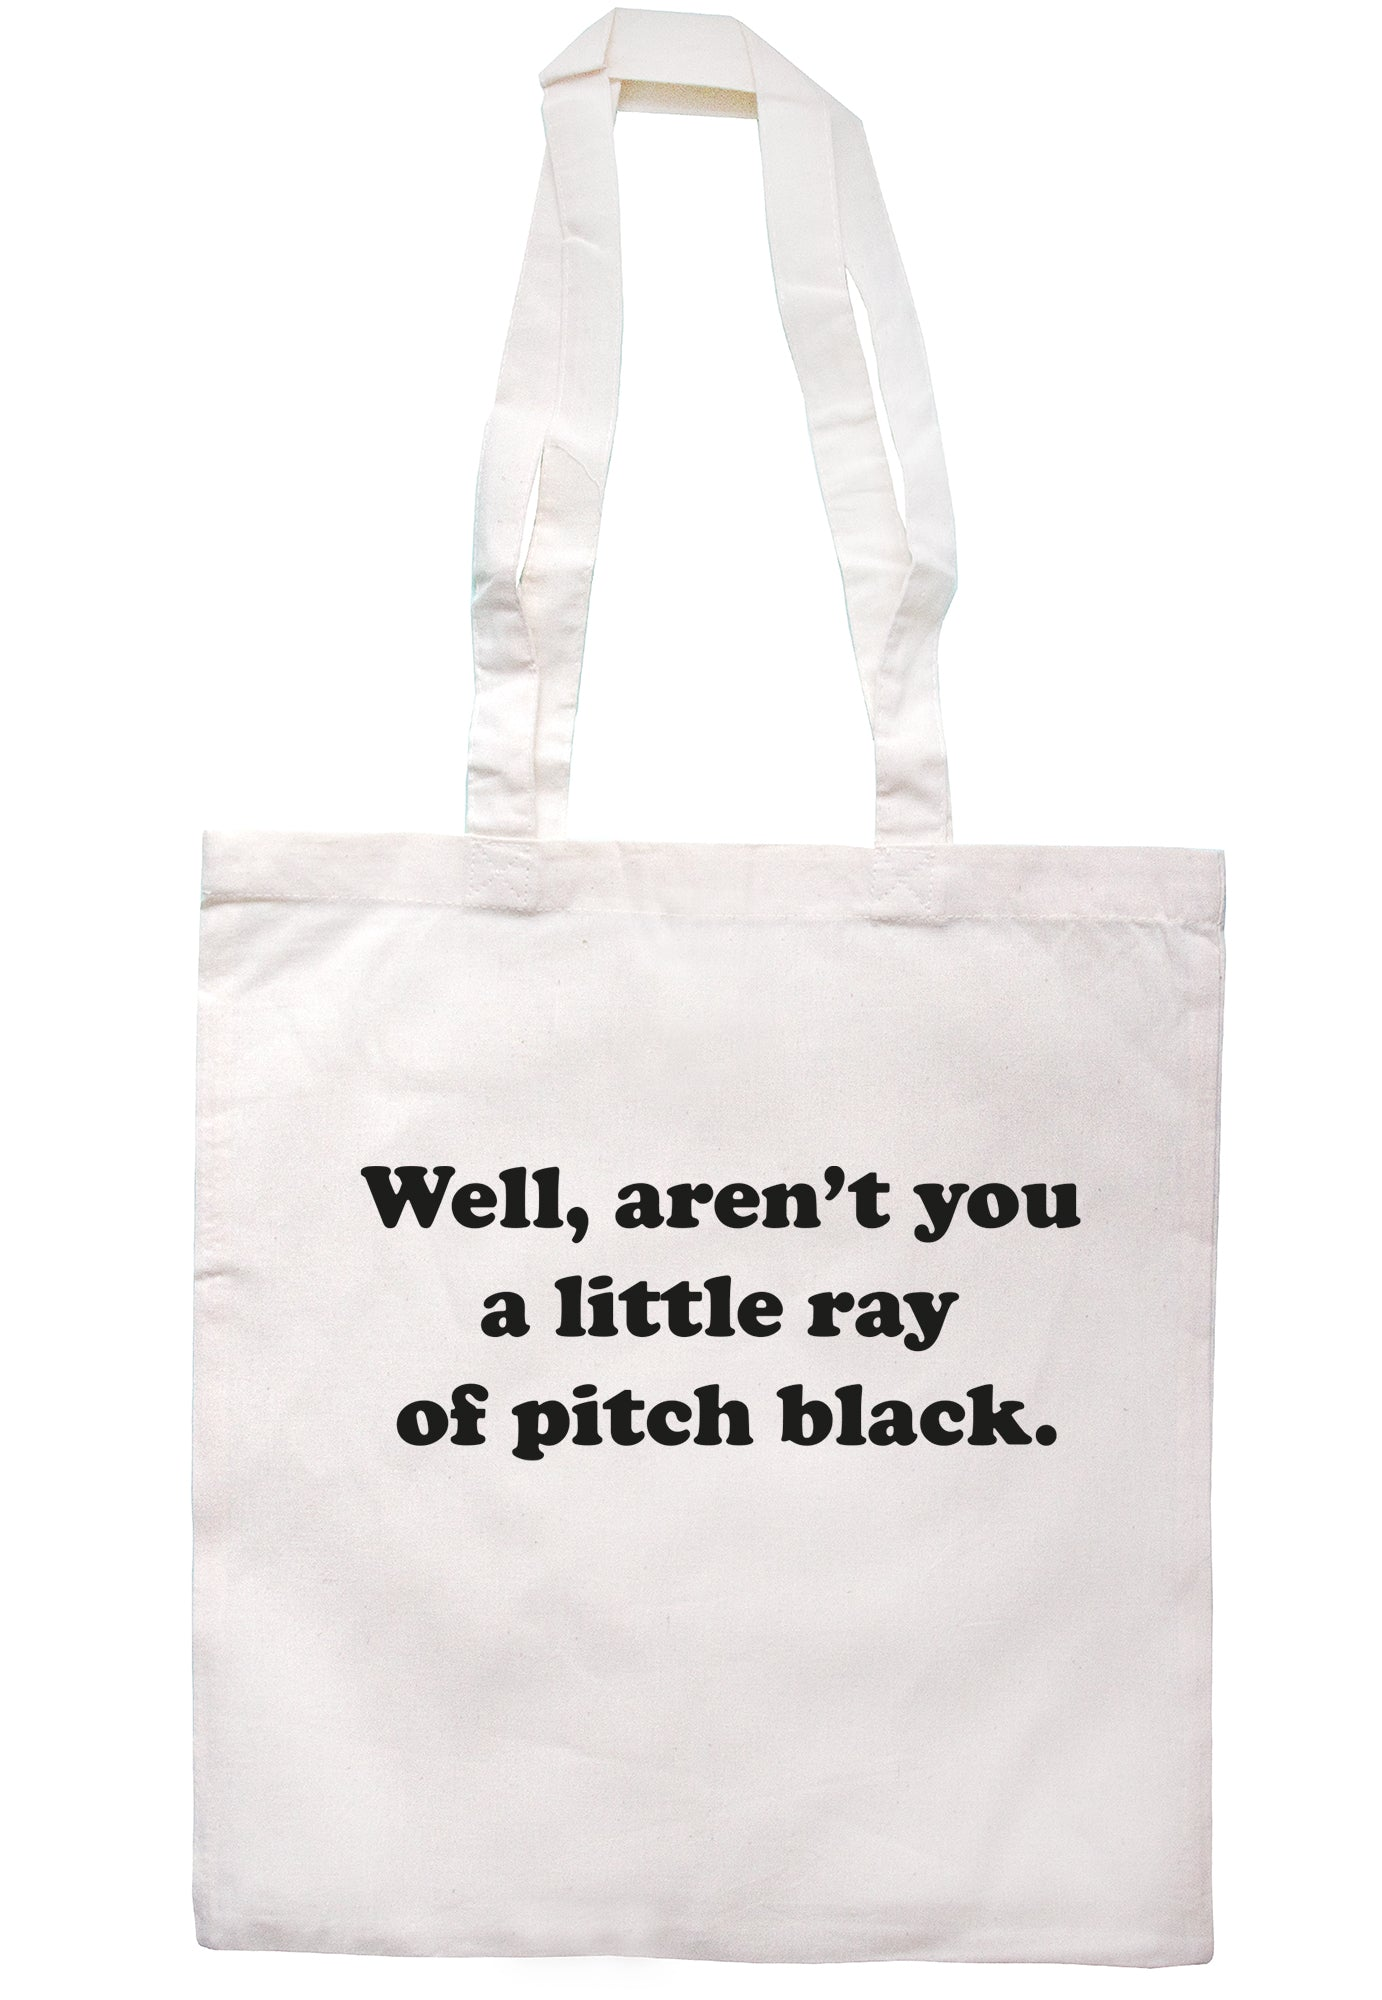 Well Aren't You A Little Ray Of Pitch Black Tote Bag S0911 - Illustrated Identity Ltd.